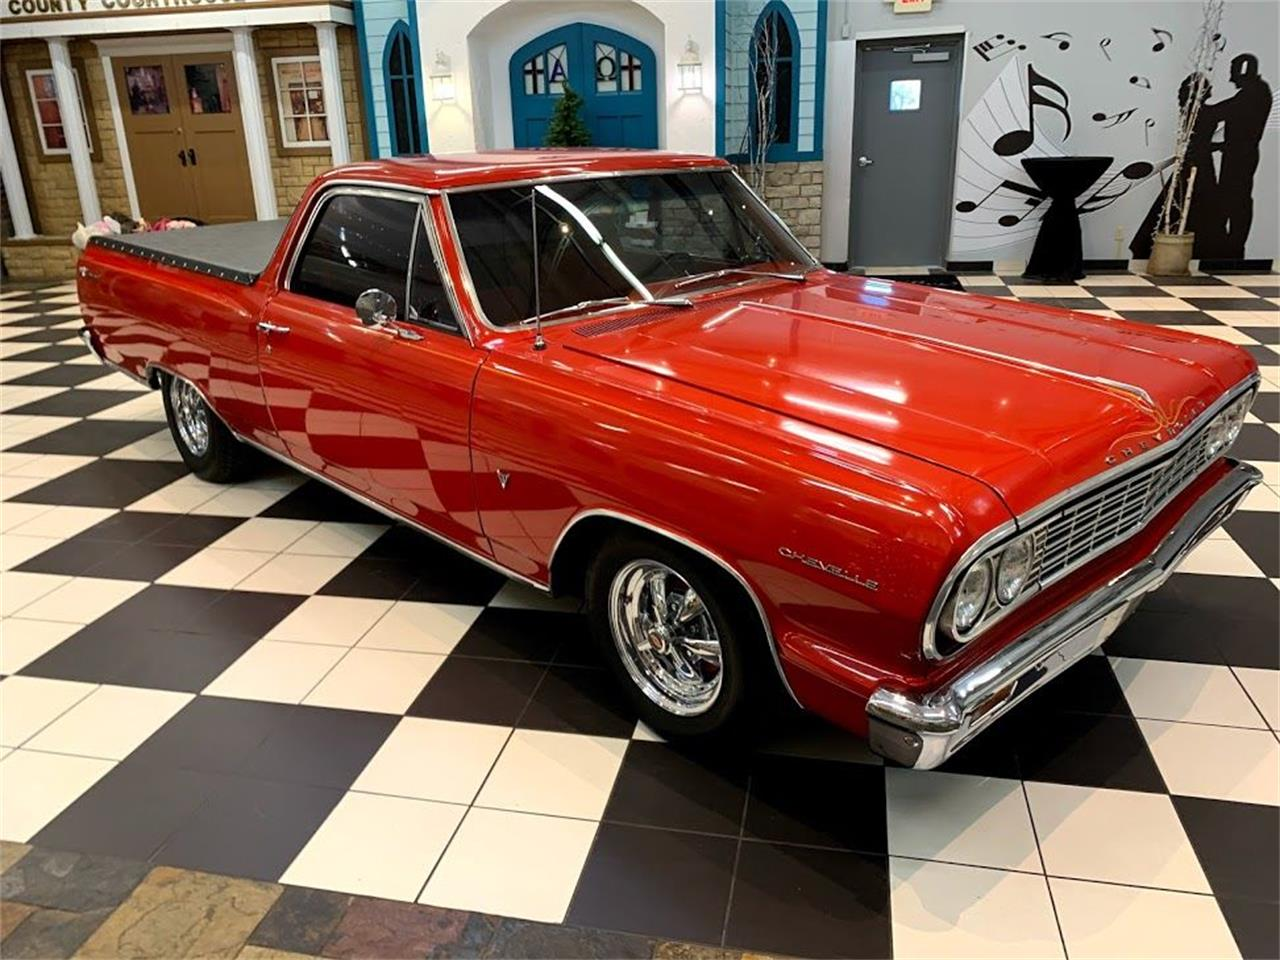 1964 Chevrolet El Camino (CC-1300249) for sale in Annandale, Minnesota